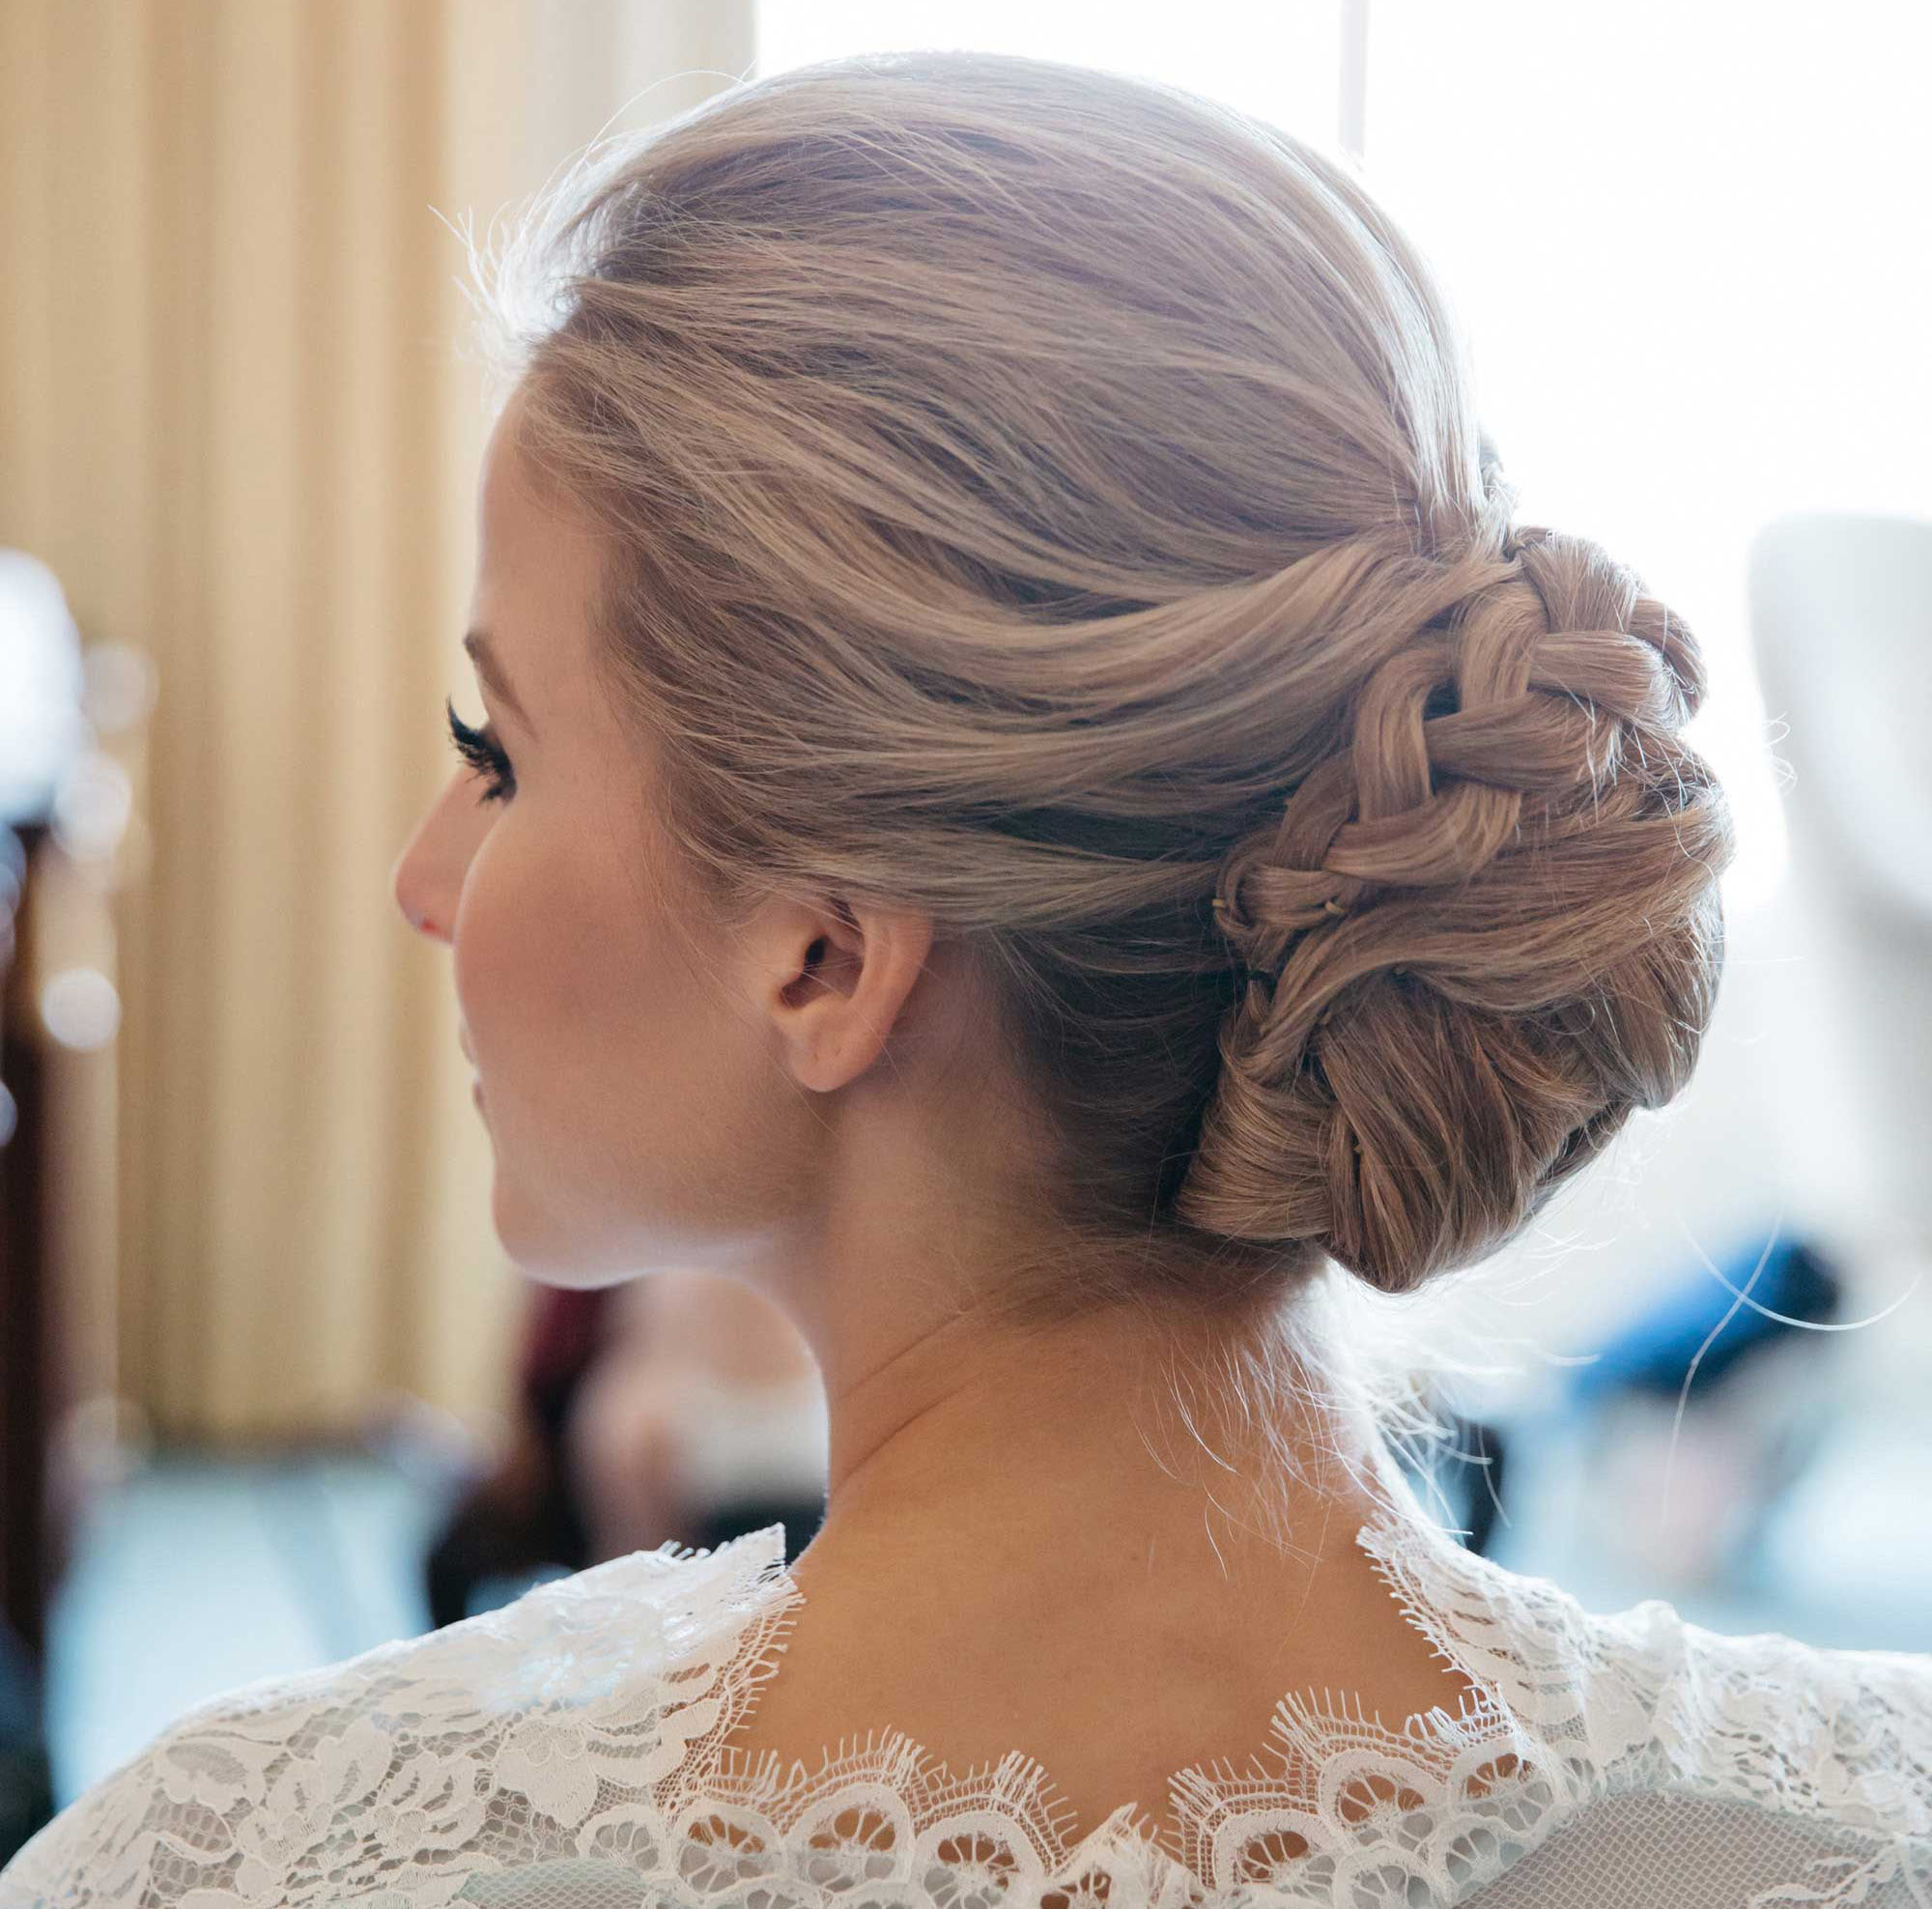 Braided Hairstyles: 5 Ideas For Your Wedding Look – Inside Weddings Throughout Newest Classic Twists And Waves Bridal Hairstyles (View 2 of 20)